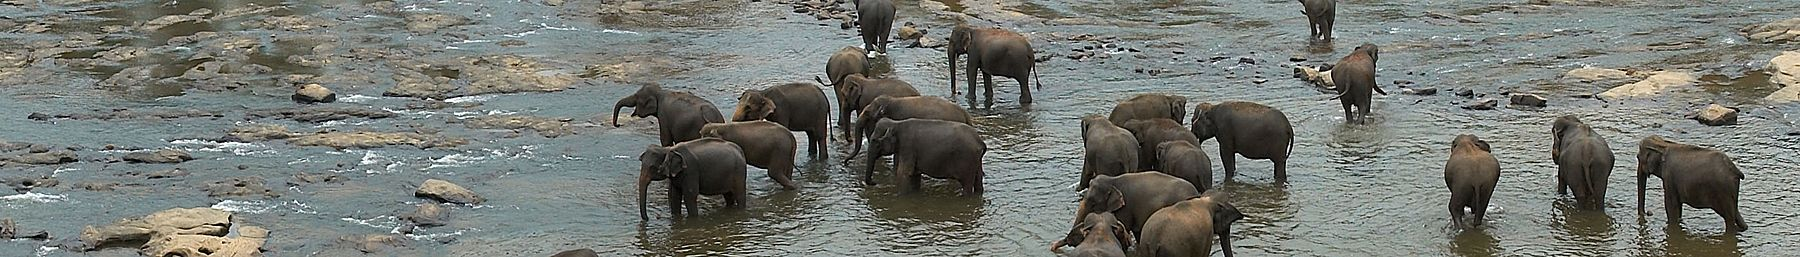 WV banner Sabaragamuwa Elephants in water.jpg